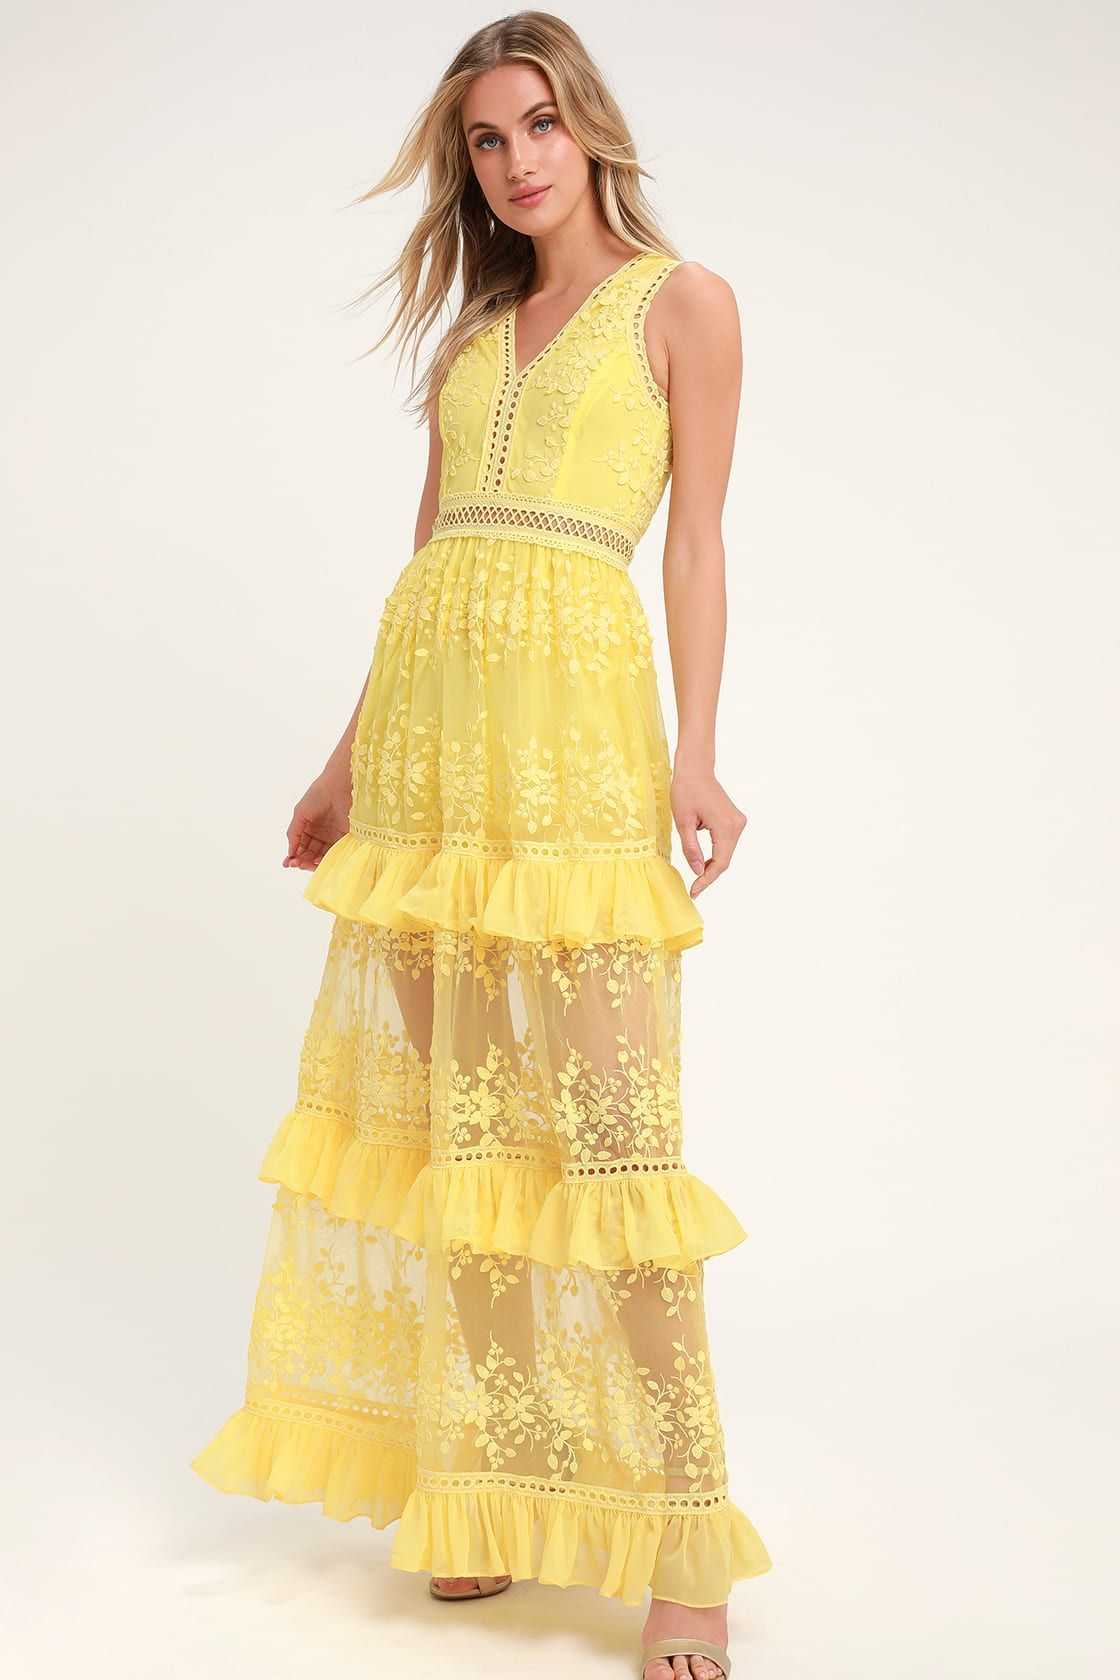 4cd7b0686e9771 Lulus | Garden Dreams Yellow Lace Tiered Maxi Dress | Size Large ...